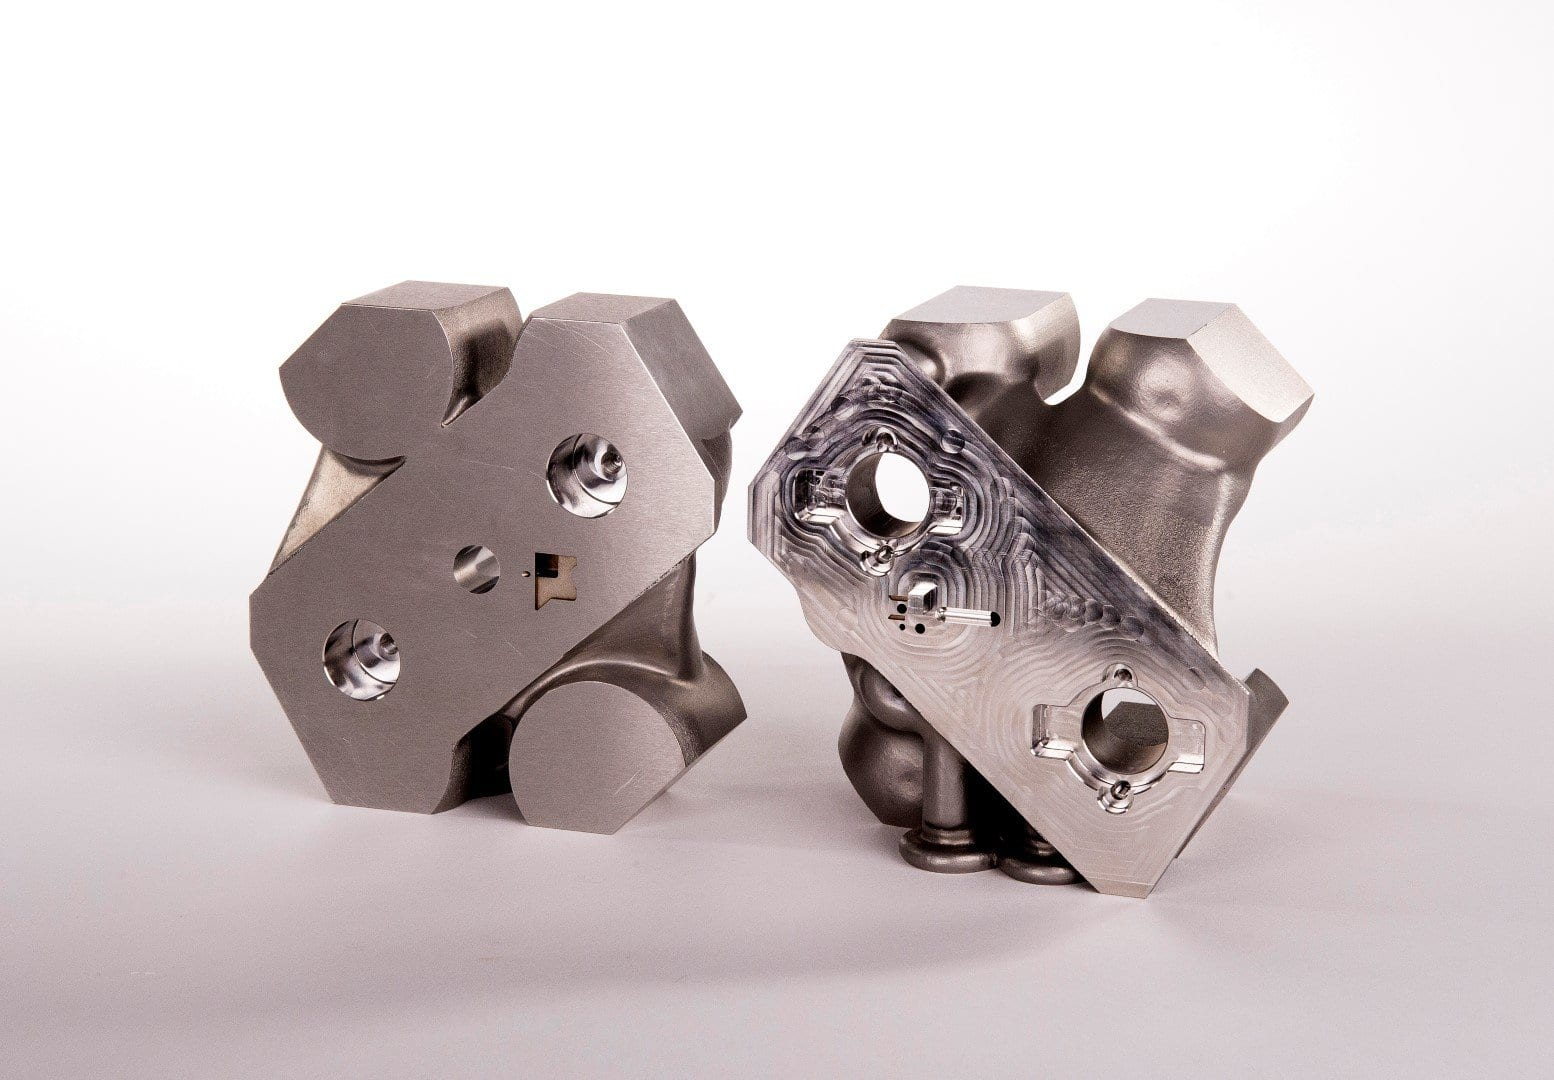 Toolcraft cuts cycle time by 30% with 3D printed tool for injection